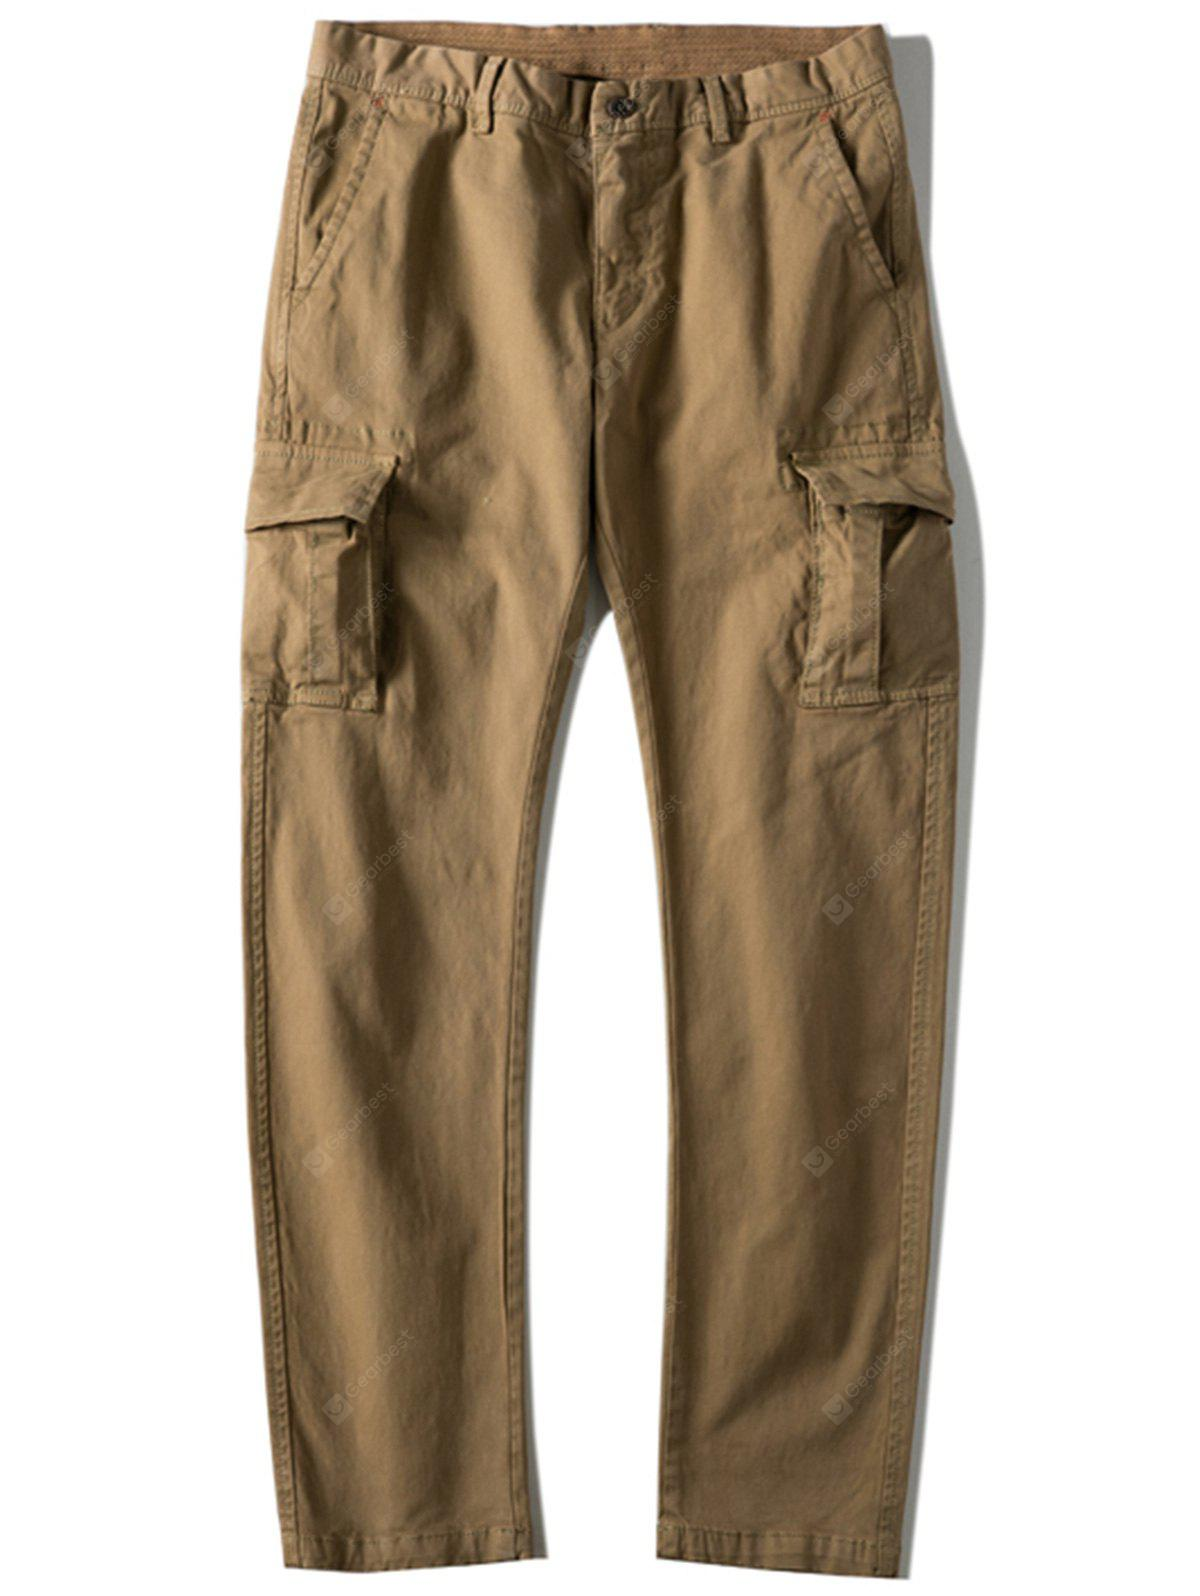 Multi-pocket Slim Fit Cargo Pants